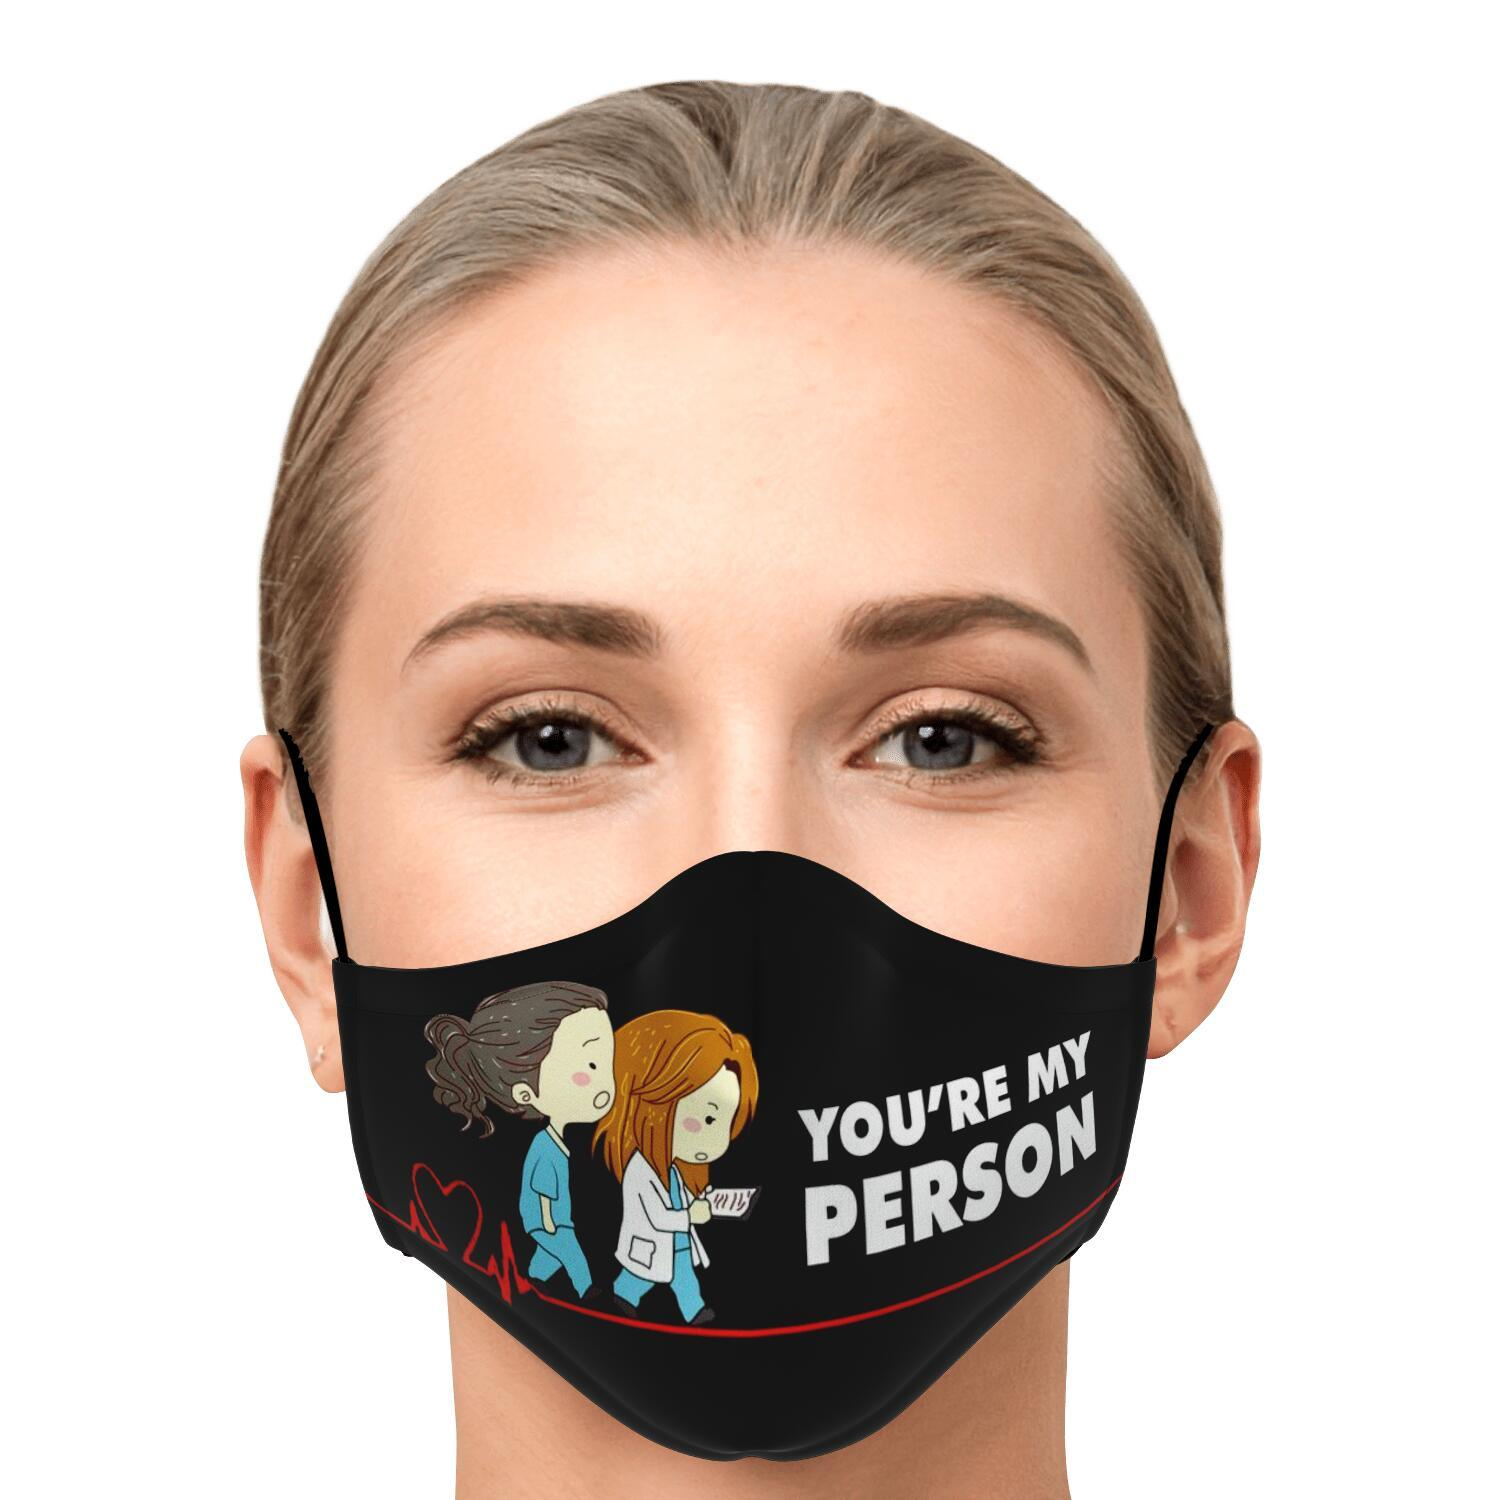 You're My Person Grey's Anatomy Face Mask 1